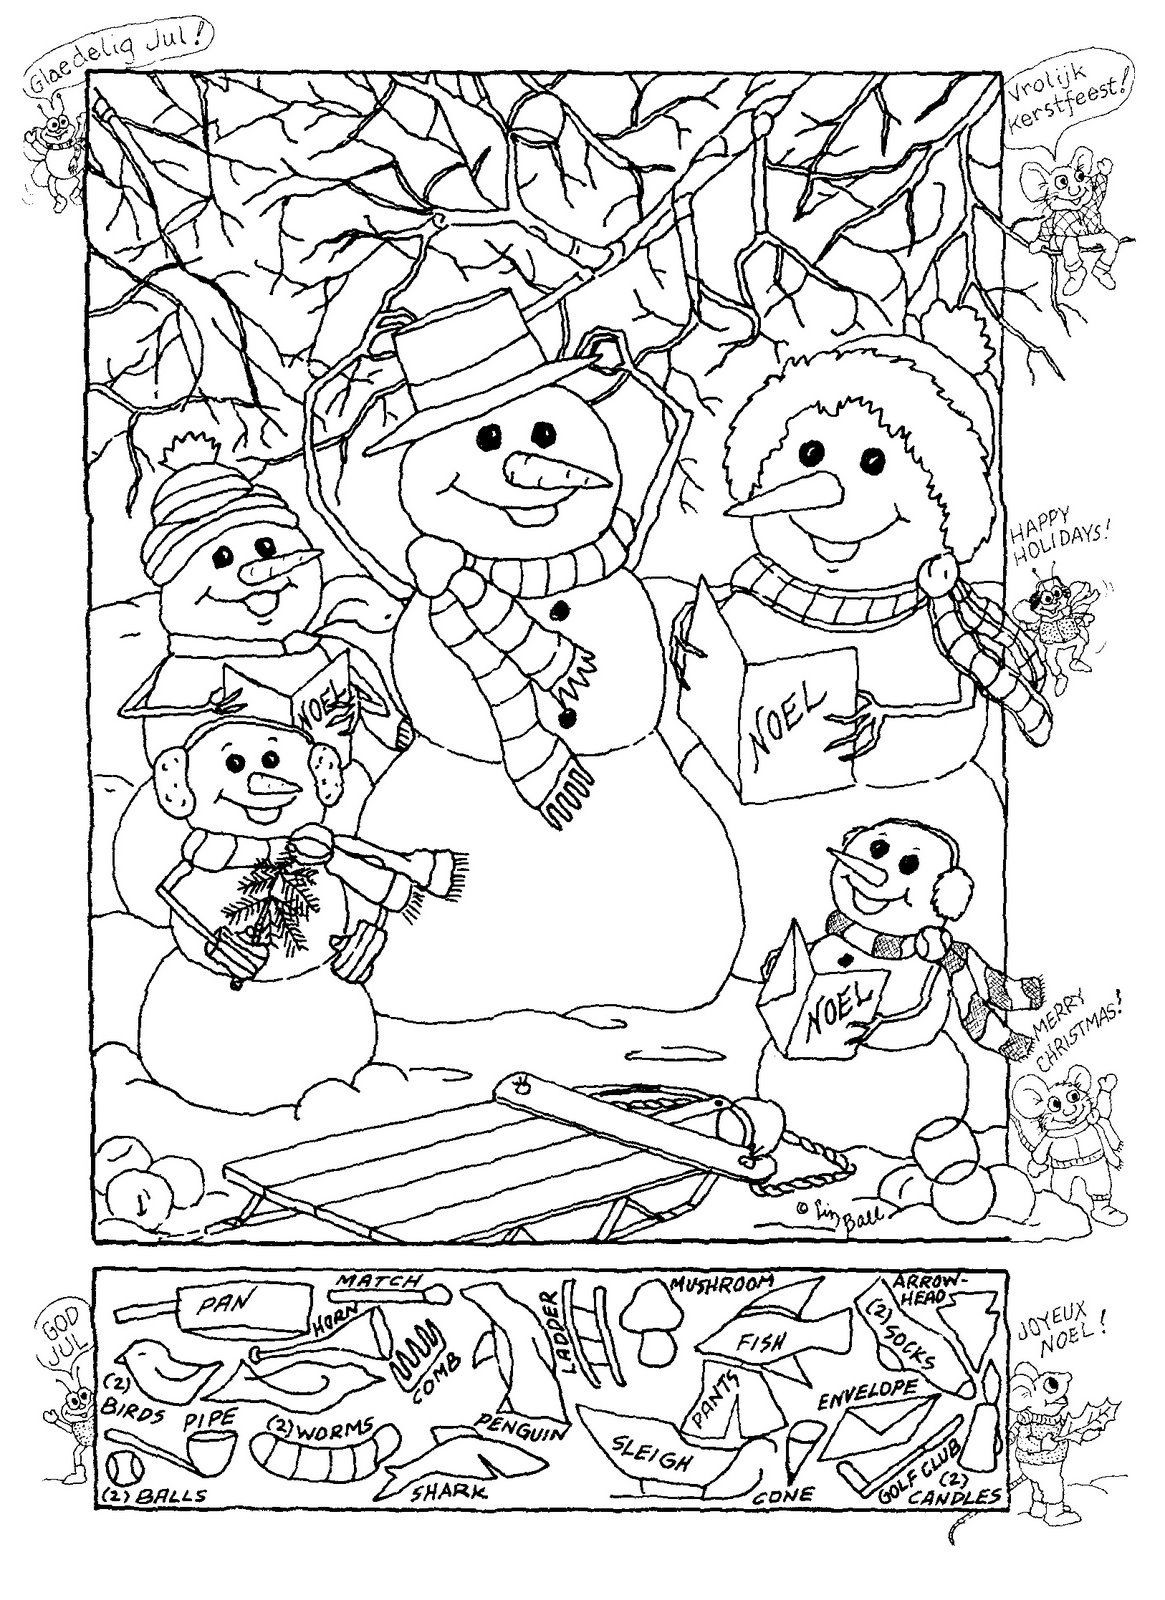 Christmas Hidden Picture Puzzles Printable Snowman Hidden Picture Puzzle for Christmas